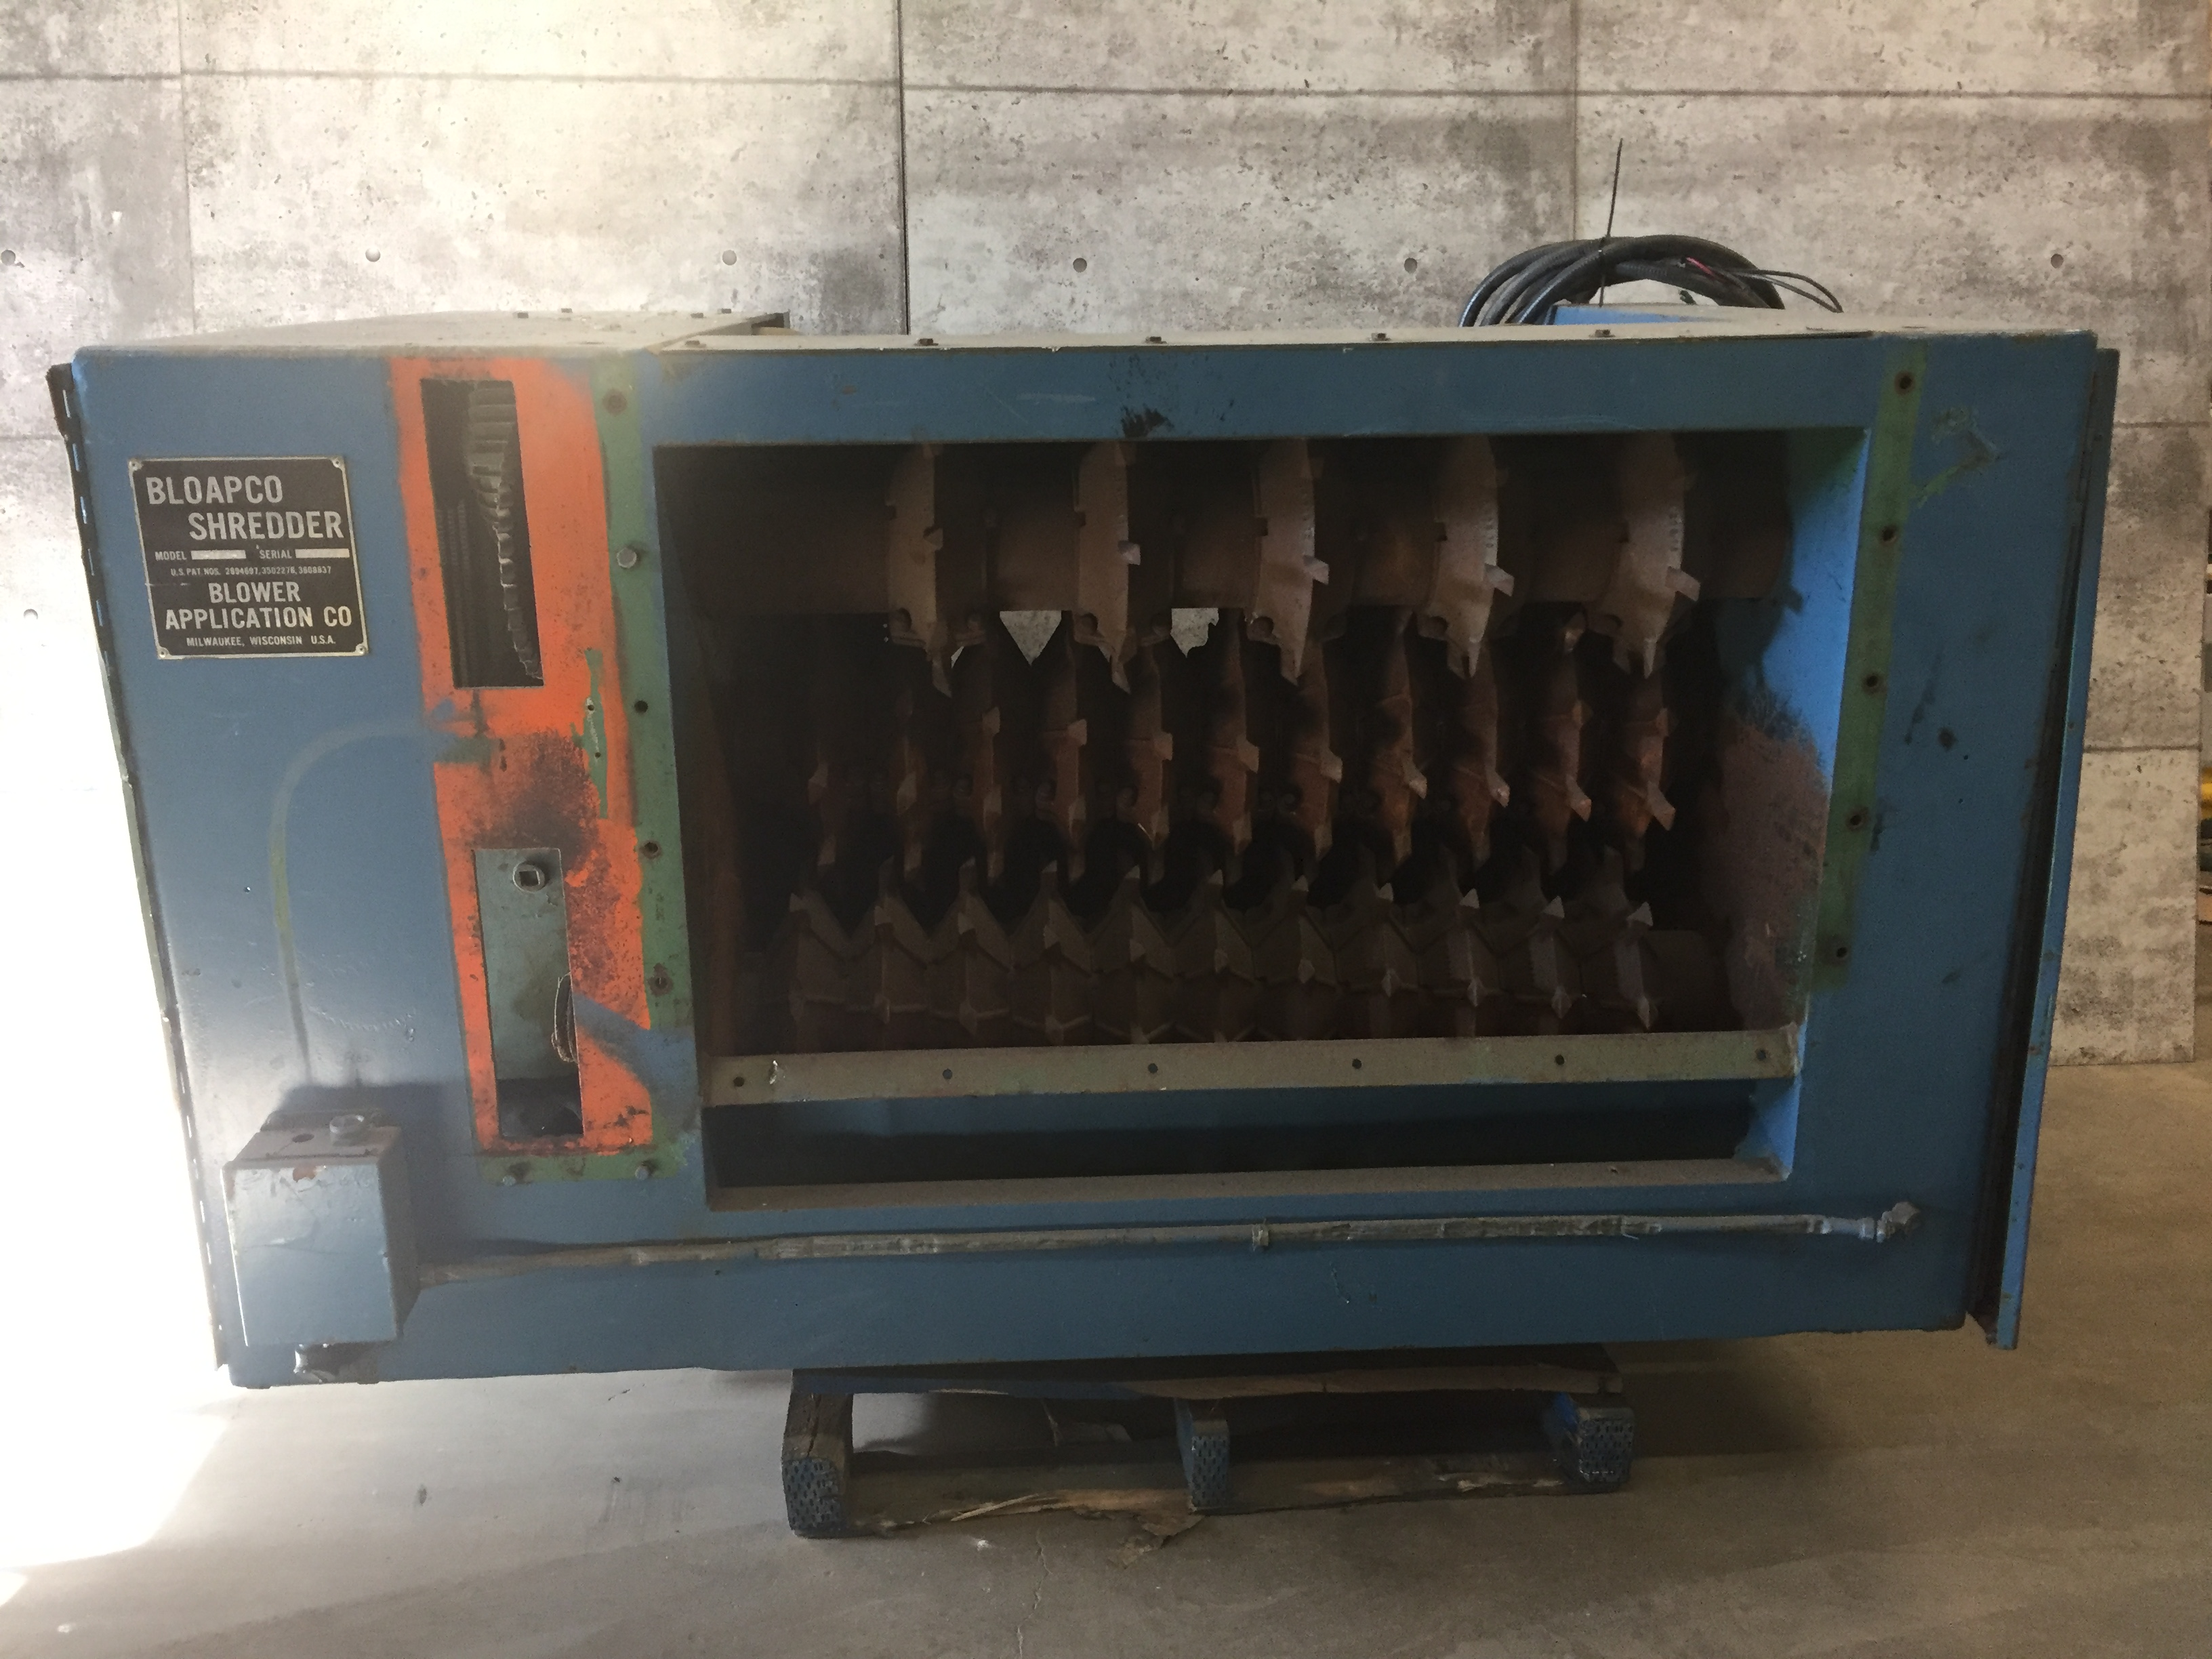 """BLOAPCO (MODEL #3C-2548-B) SHREDDER WITH 1"""" CORES AND CARDBOARD - SERIAL #73584"""